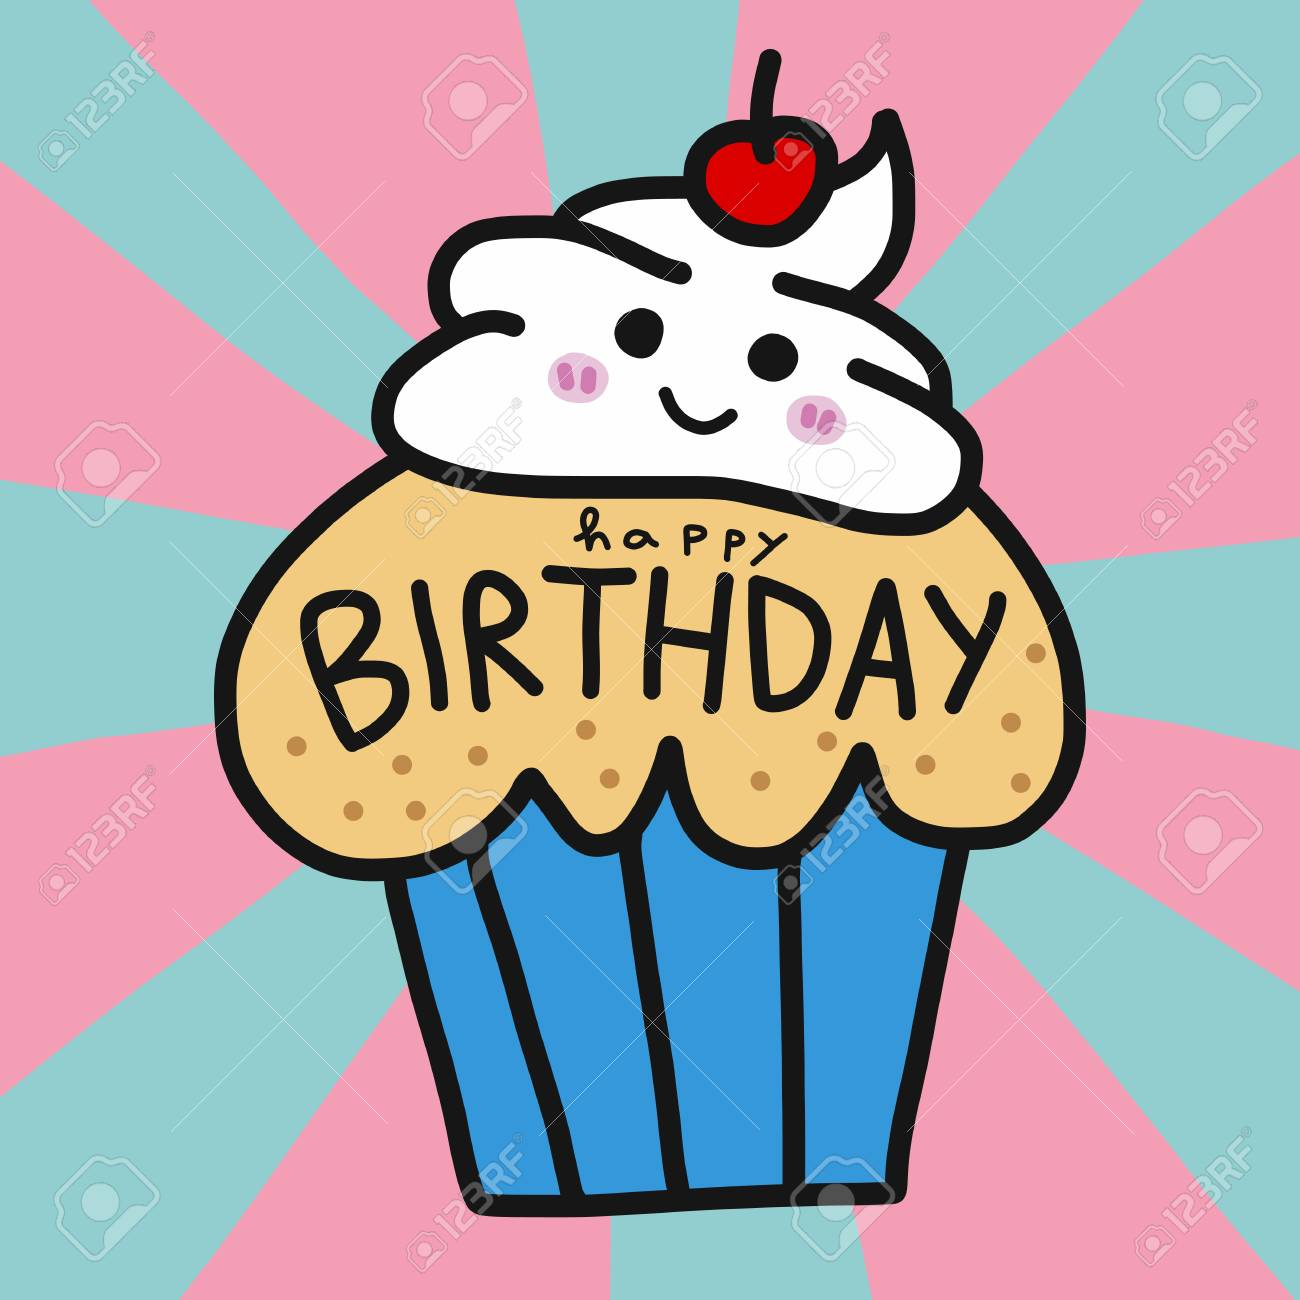 Superb Happy Birthday Cup Cake Cute Cartoon Vector Illustration Doodle Personalised Birthday Cards Cominlily Jamesorg